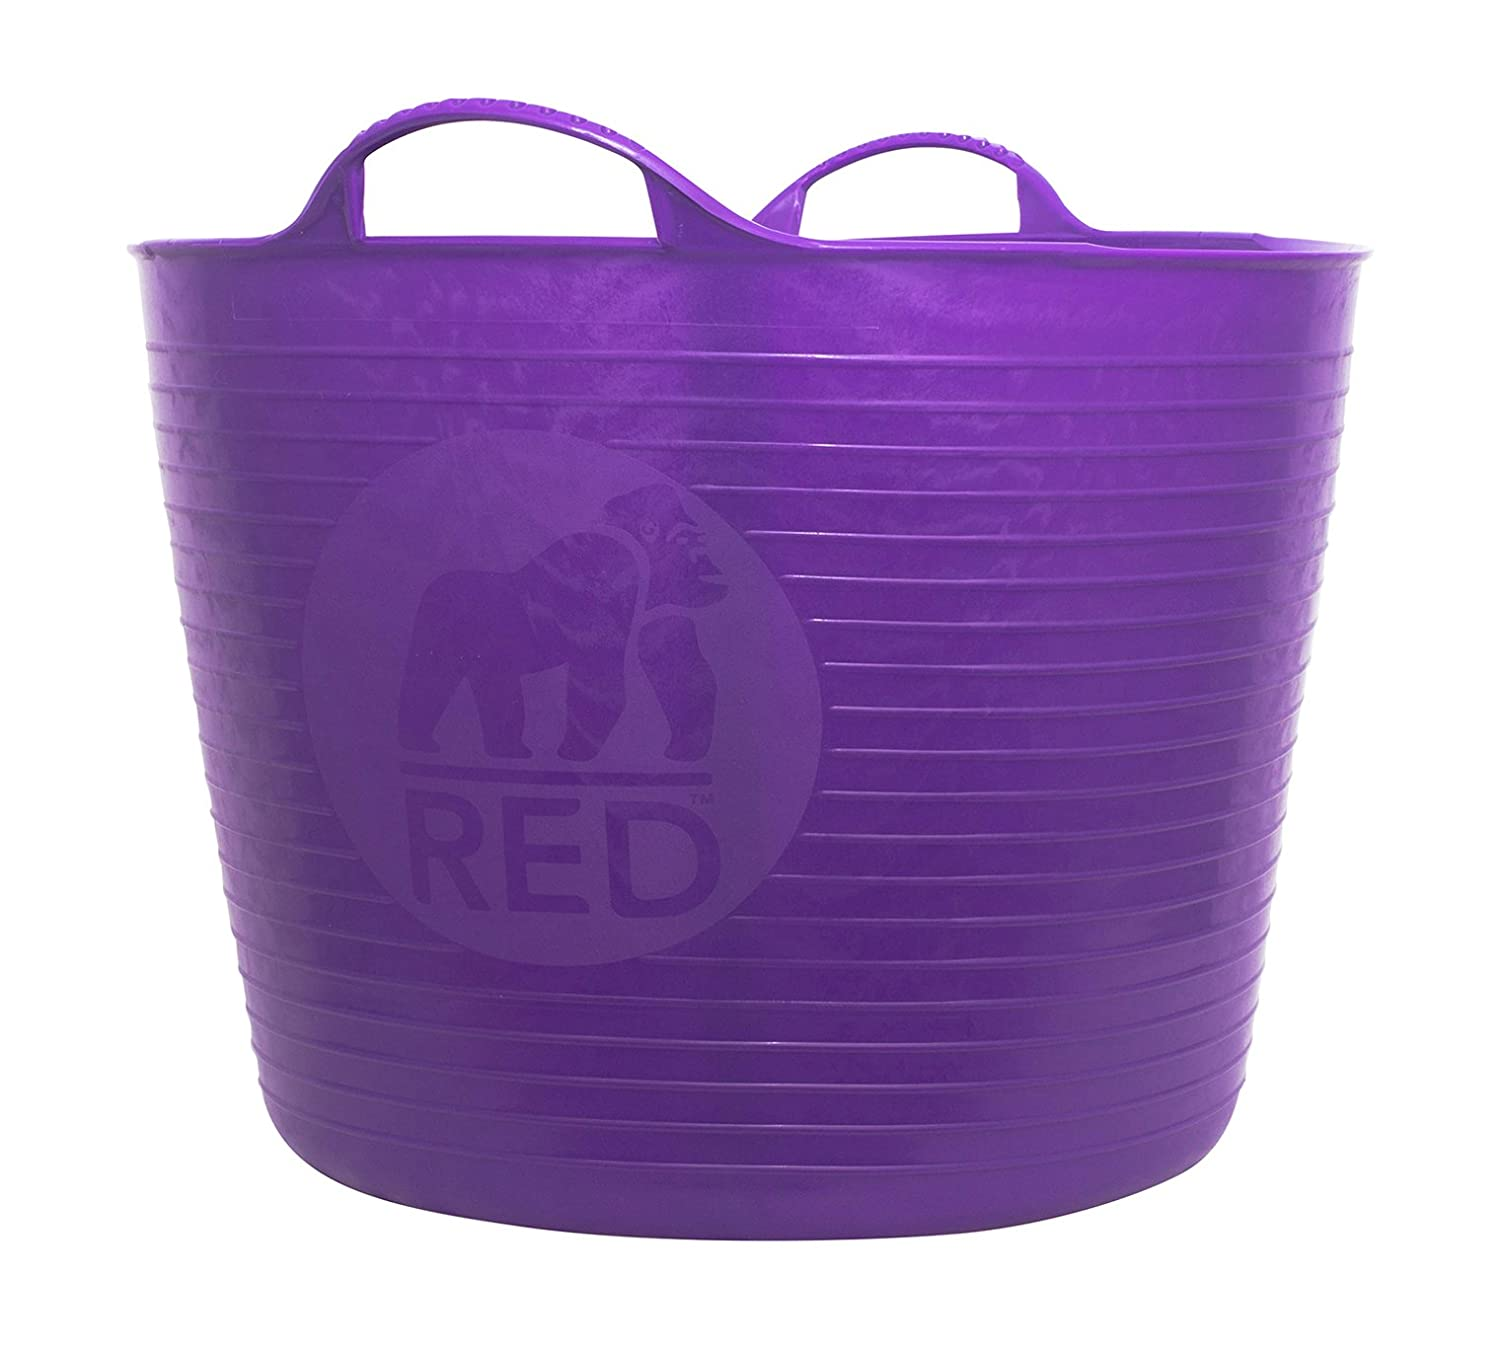 Tubtrugs Large 10 Tub, 10 gallon, Purple